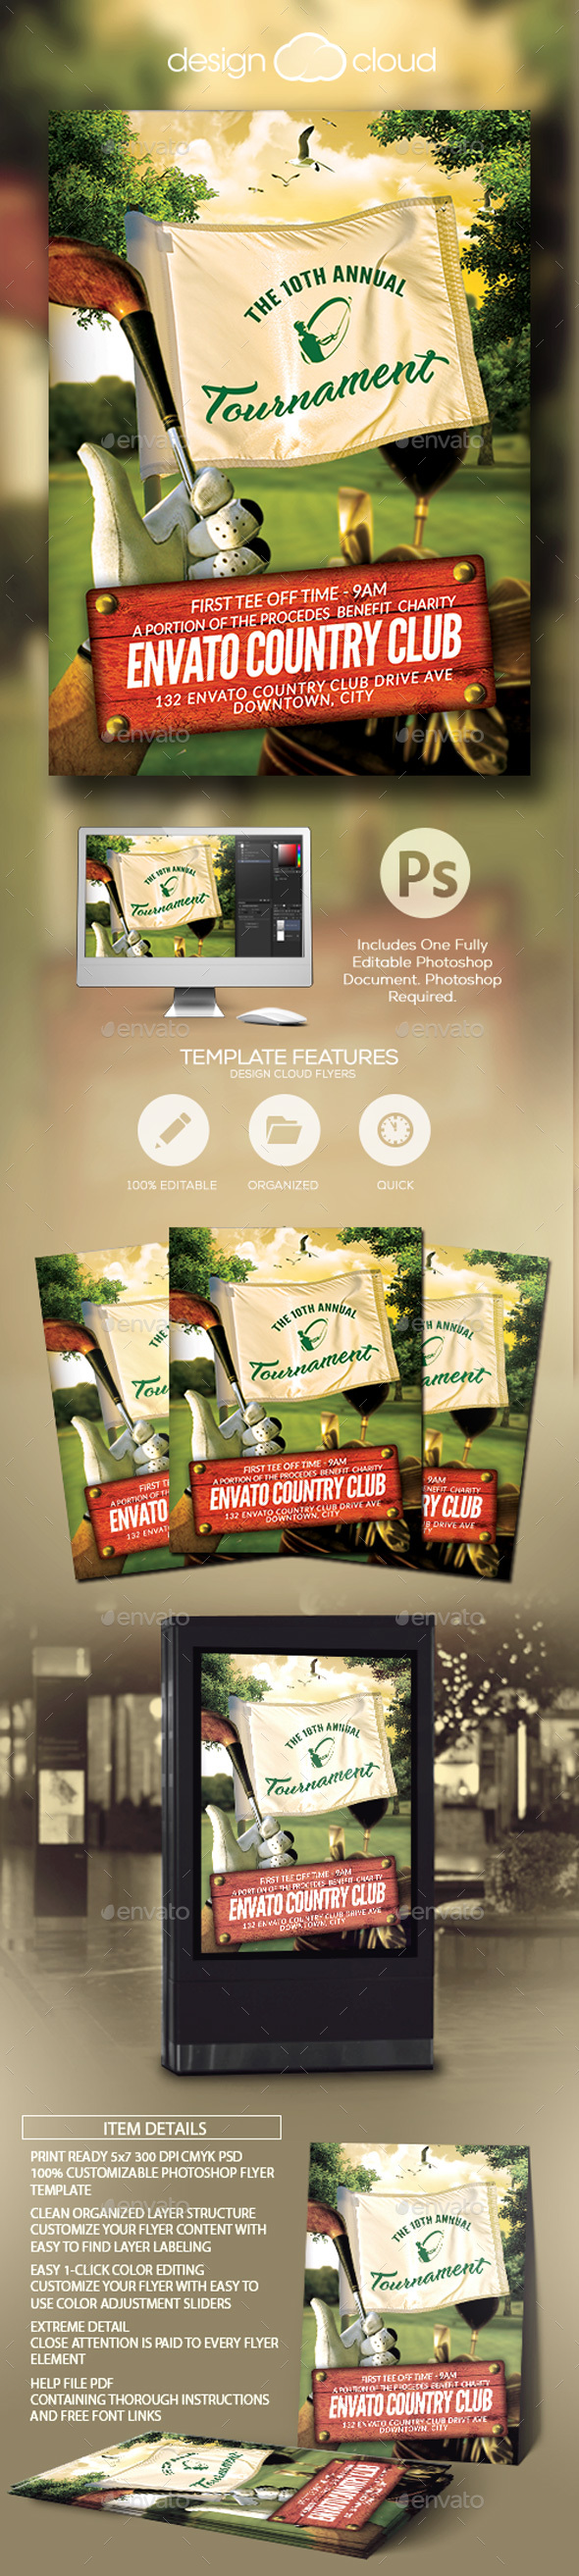 Golf Tournament Event Flyer Template - Sports Events